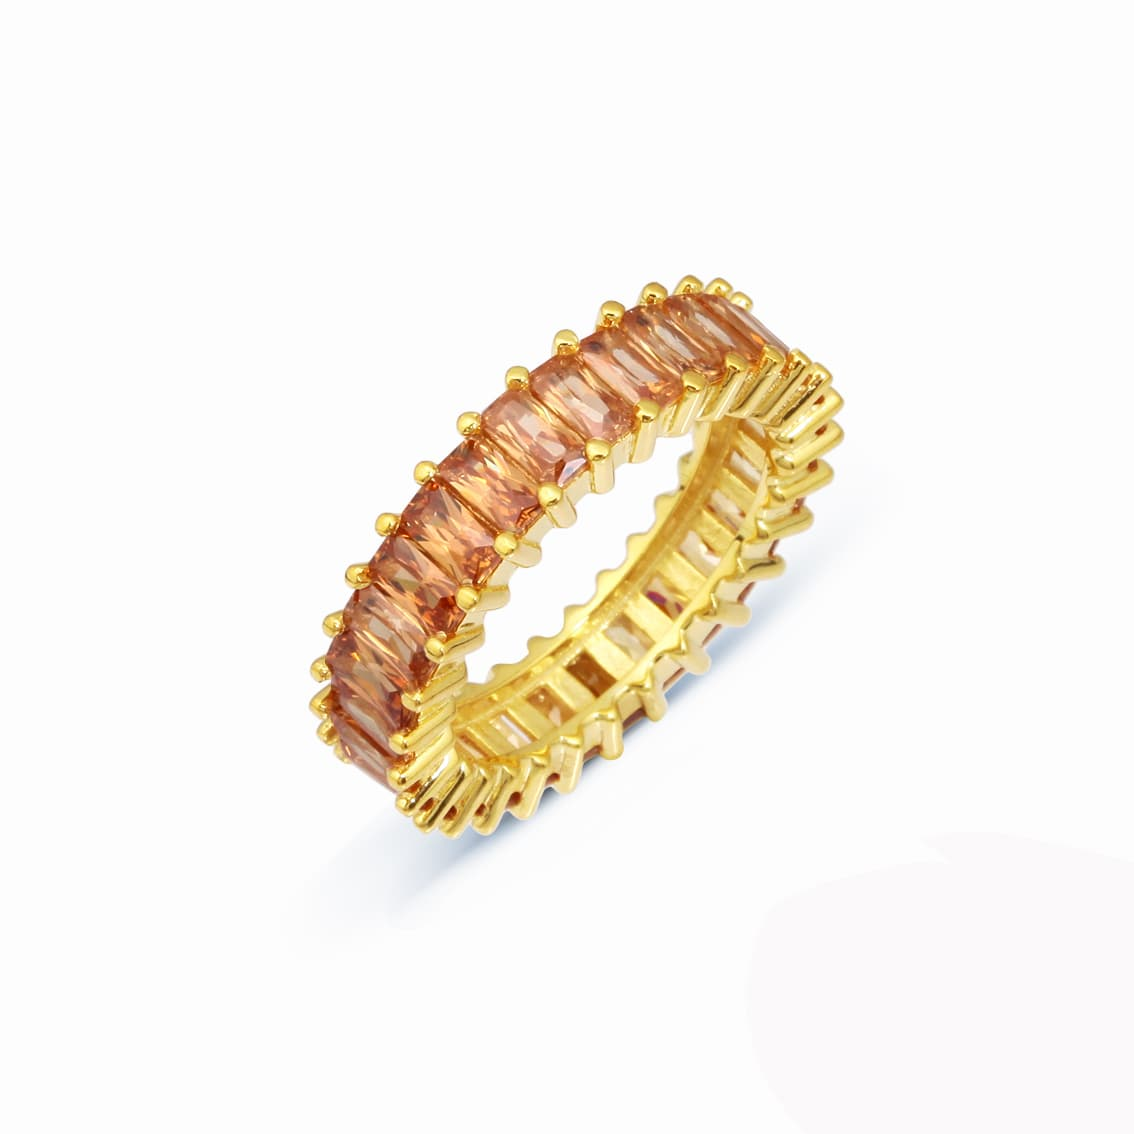 Gold plated sterling silver ring models